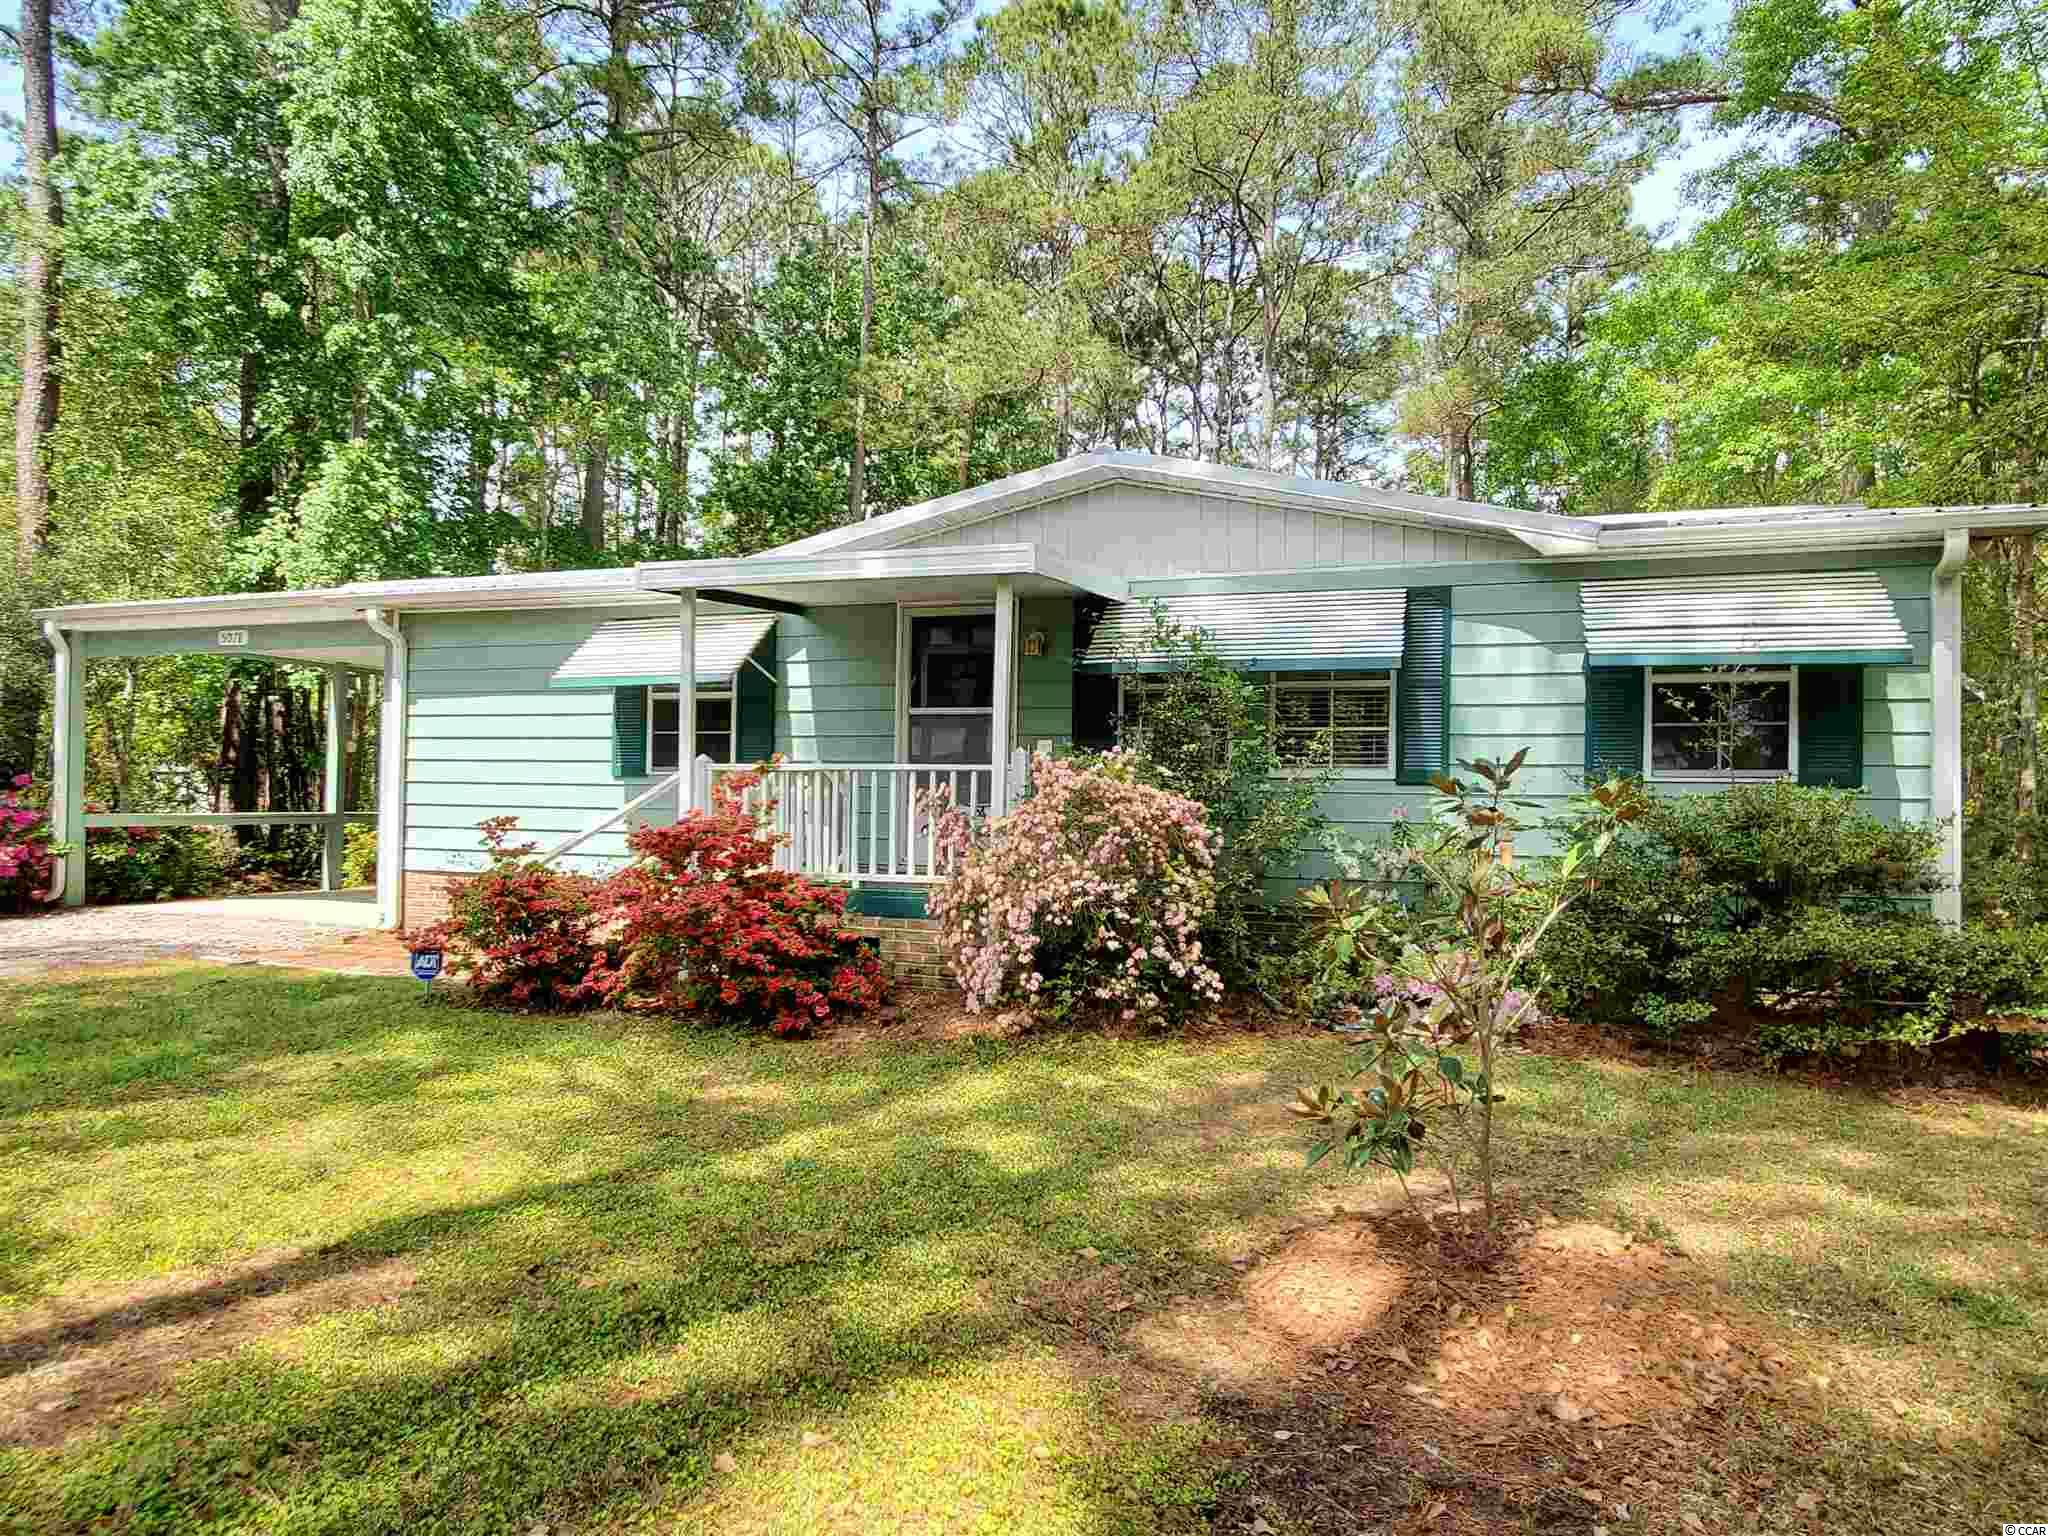 Don't miss this sweet cottage!  Close to Huntington State Park, Brookgreen Gardens, beaches, shopping and more, 5078 Pee Dee Lane has been used as a family vacation home. It's never been rented and you can tell.  The sellers have  updated and renovated it over the years. The security system is active and can be transferred to new owner.  The metal roof was put on in 2011 and the screened porch was added at that time.  The HVAC system is 8 years old.  The Carolina Room has been undergoing renovations that you can complete to your satisfaction.  There is an outside shower to wash away the beach sand, workshop and fenced backyard. The kitchen has been renovated including cabinets, countertops, flooring and more. There is a Terminix contract which can be assumed by the buyer for a fee. The lot is 95 X 200!  NO HOA  and more!